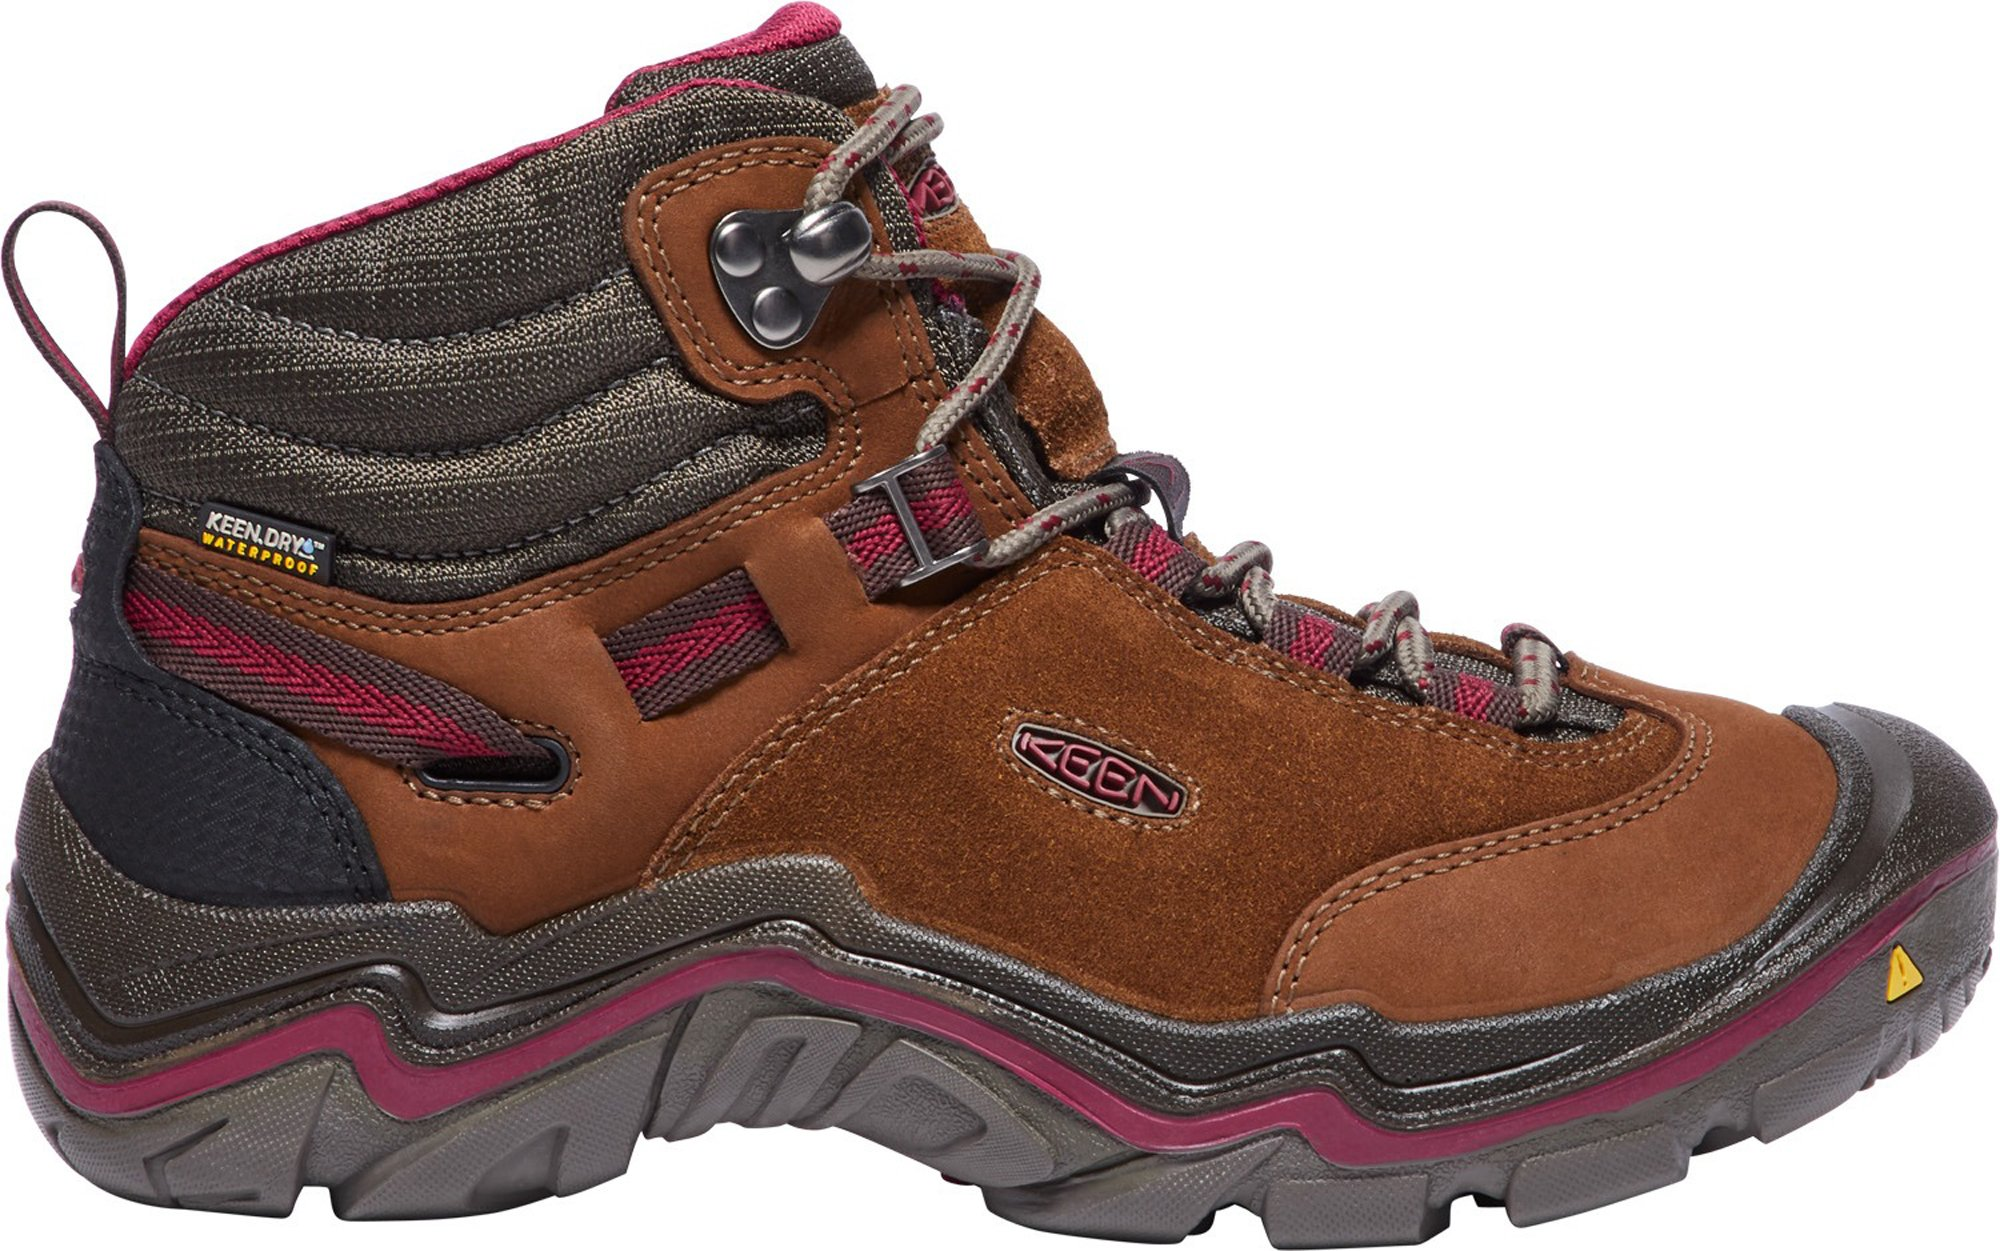 KEEN Women's Laurel Mid WP-w Trail Runner, Monks Robe/Rhododendron, 9 M US by KEEN (Image #1)